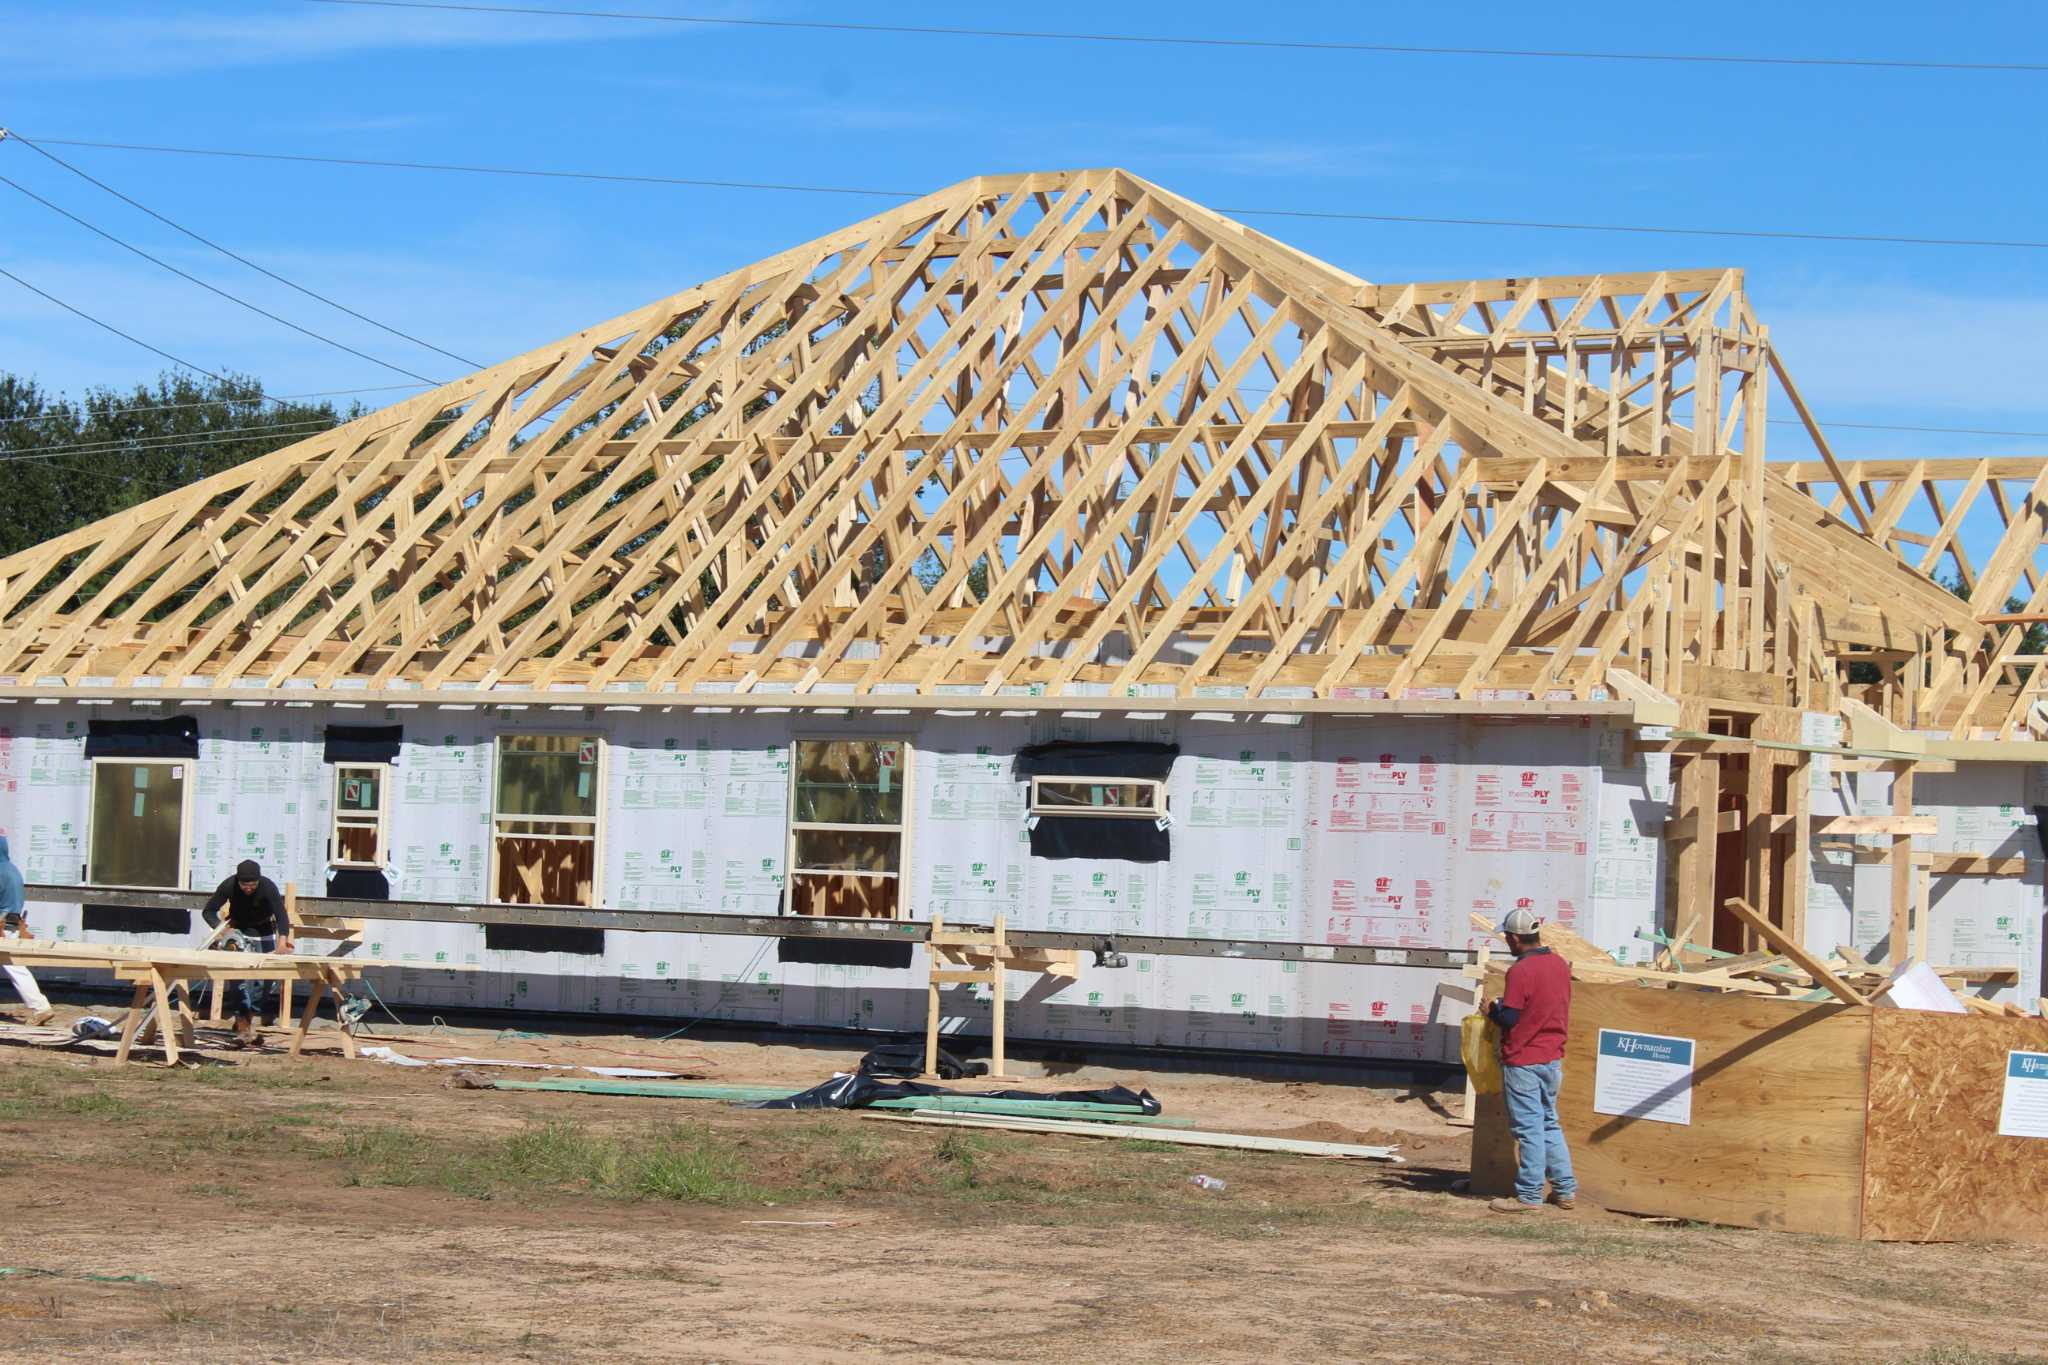 Homebuilding booms as housing starts rise 40 percent year over year